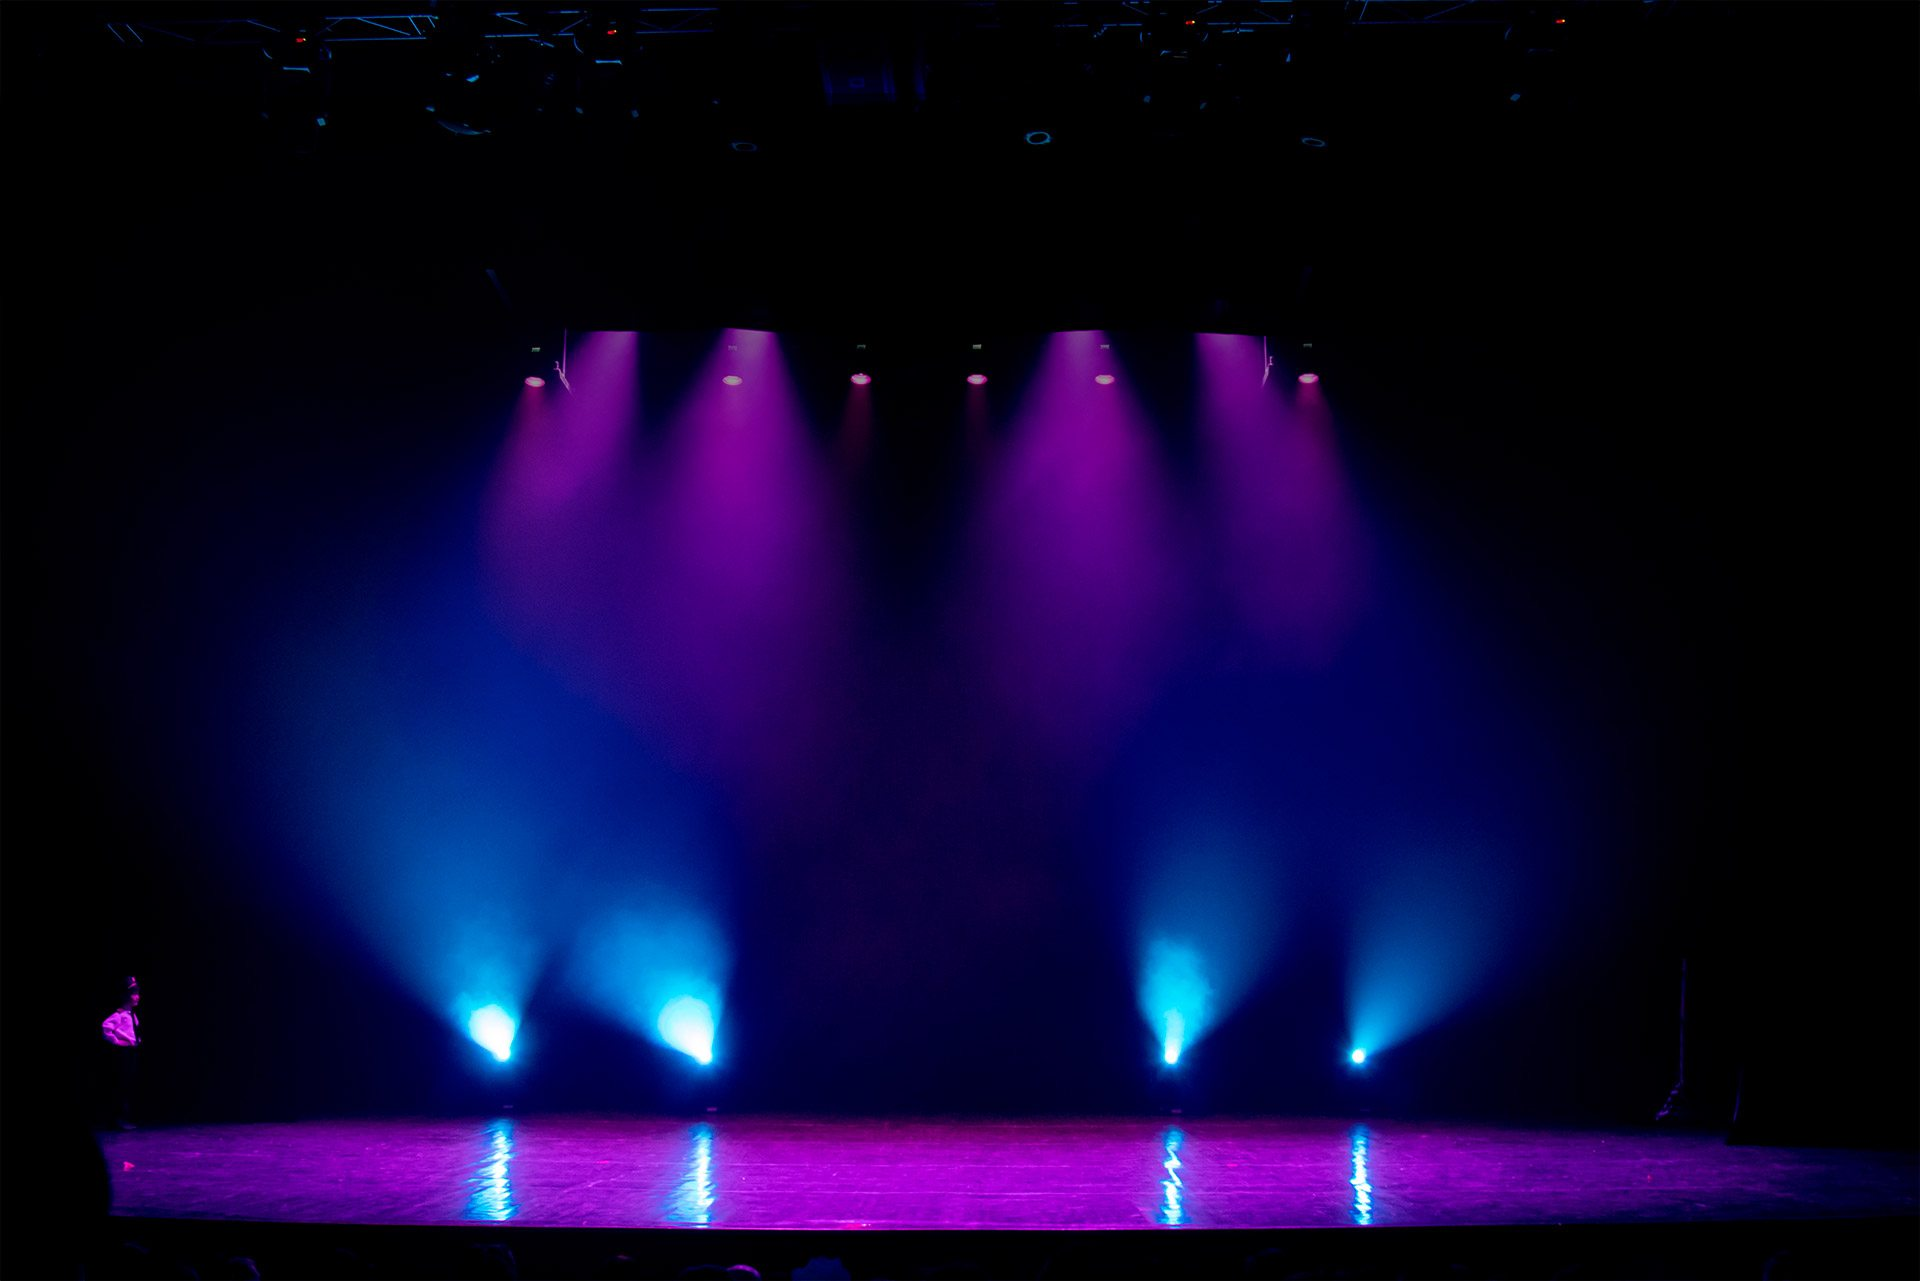 stage lighting on an empty stage in a dark room